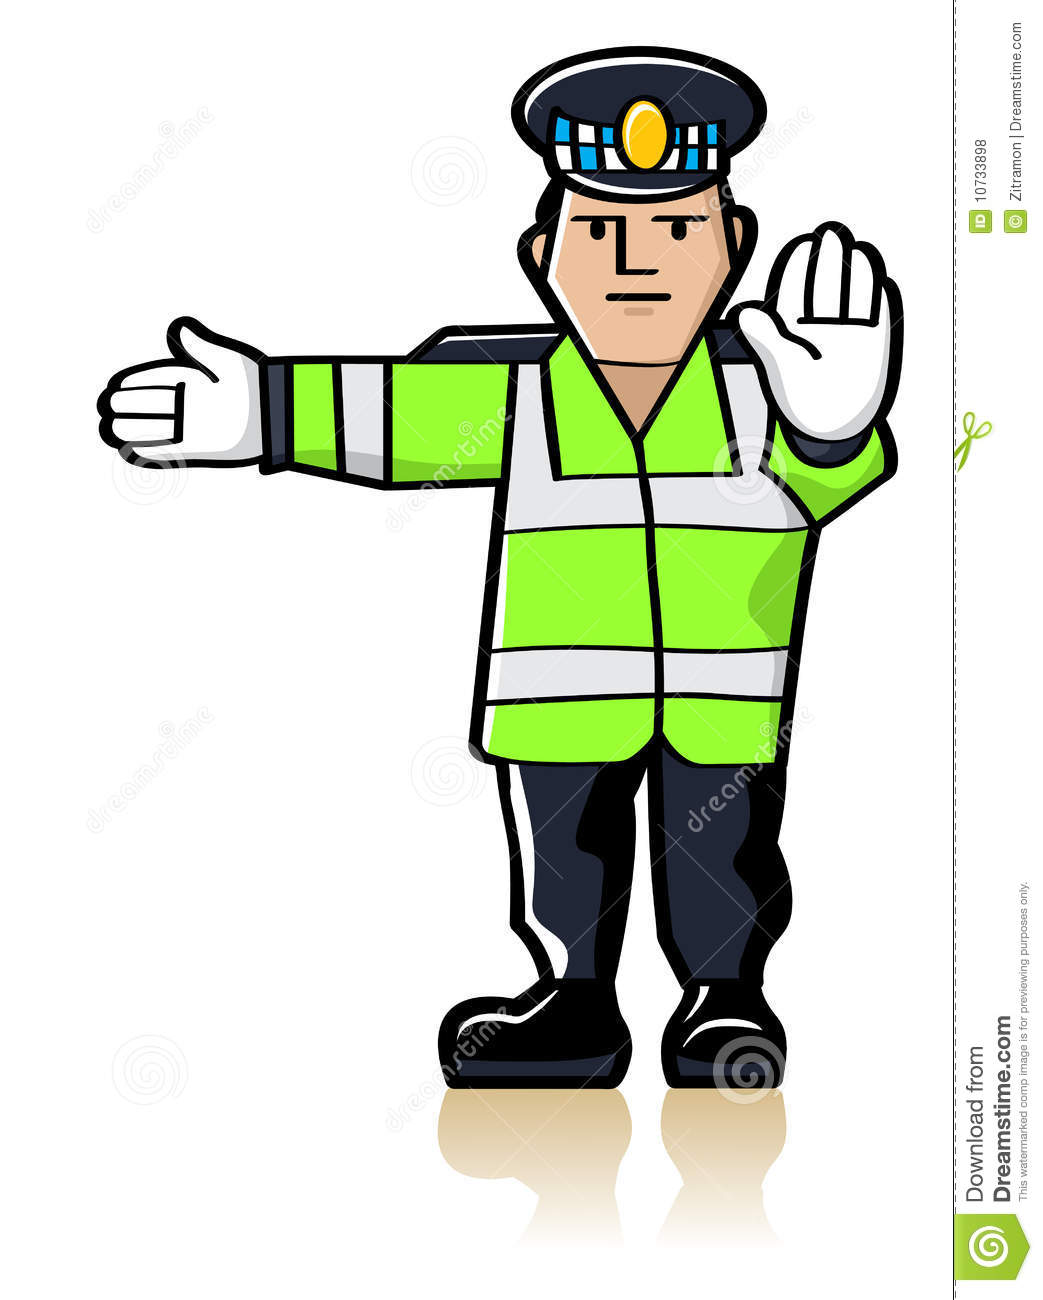 Traffic Officer Editorial Stock Image - Image: 26956169